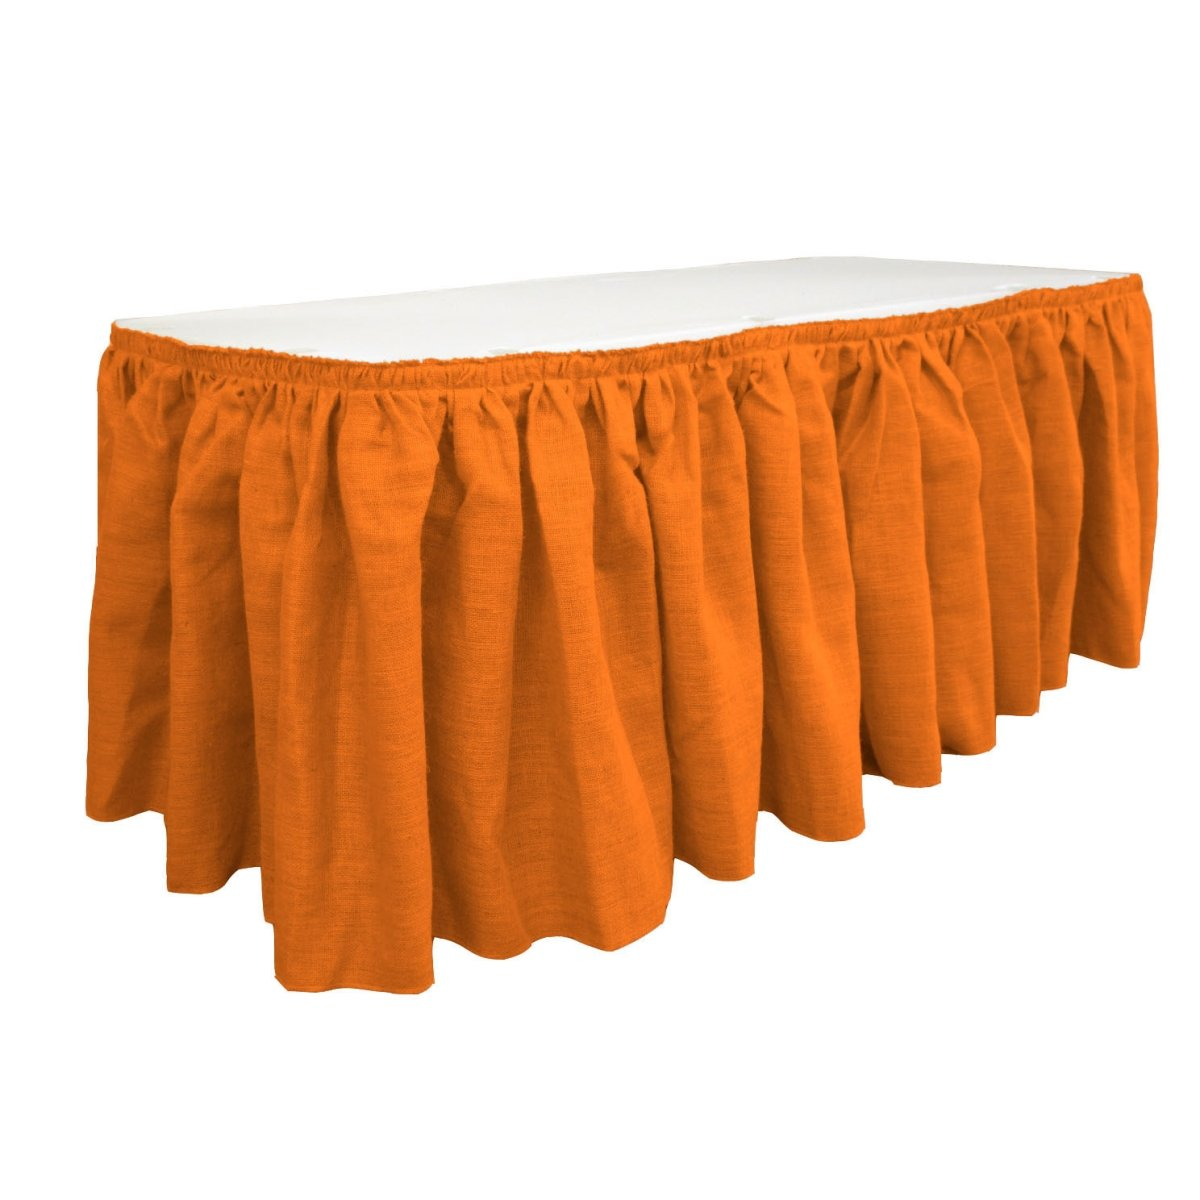 LA Linen SkirtBurlap17x29-10Lclips-Orange Burlap Table Skirt with 10 L-Clips44; Orange - 17 ft. x 29 in.